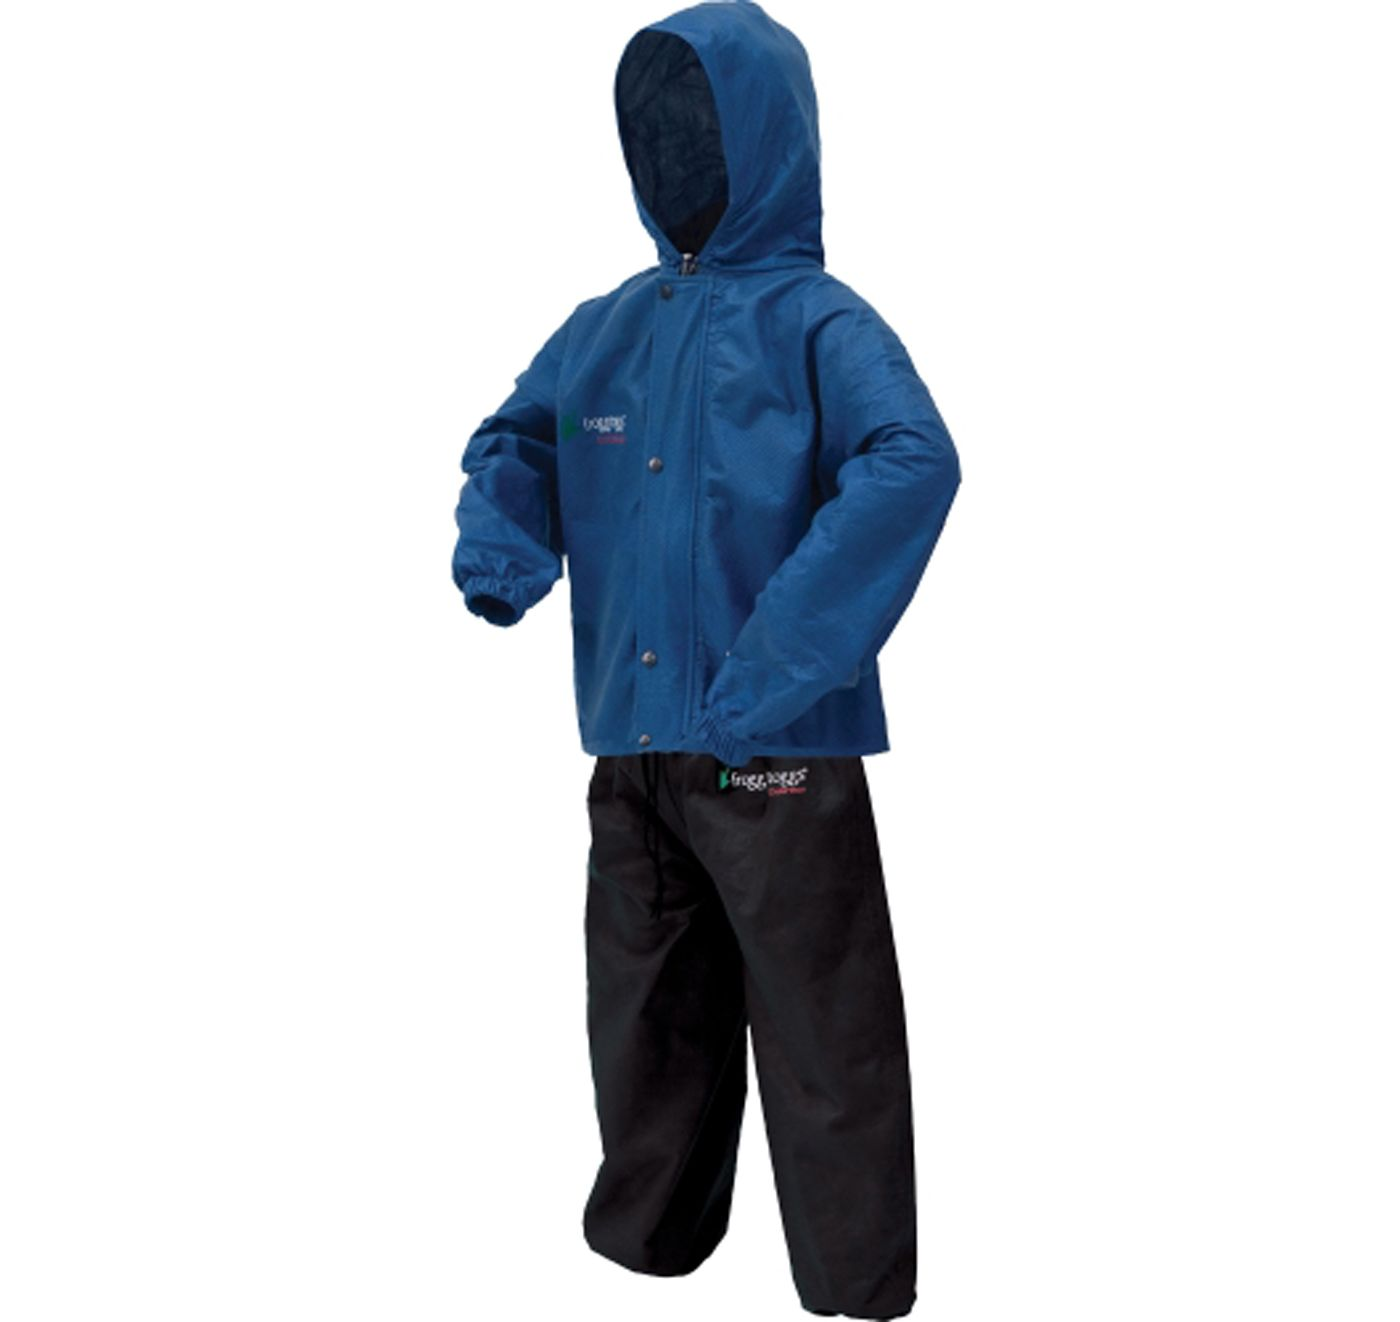 frogg toggs Youth Classic Polly Wogg Rain Suit